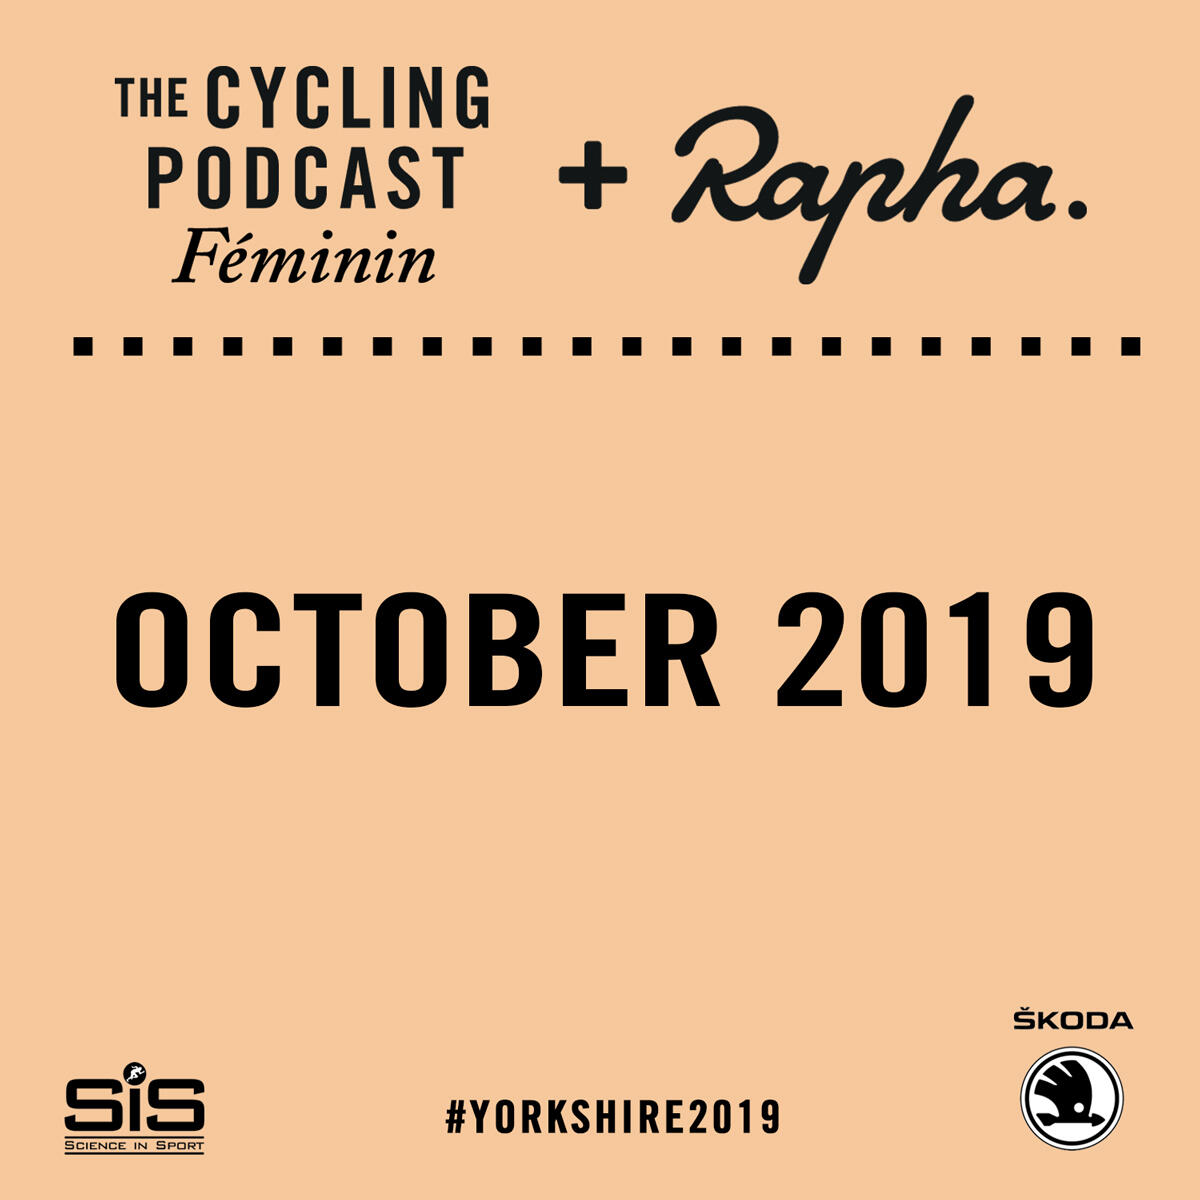 167: The Cycling Podcast Féminin | October 2019